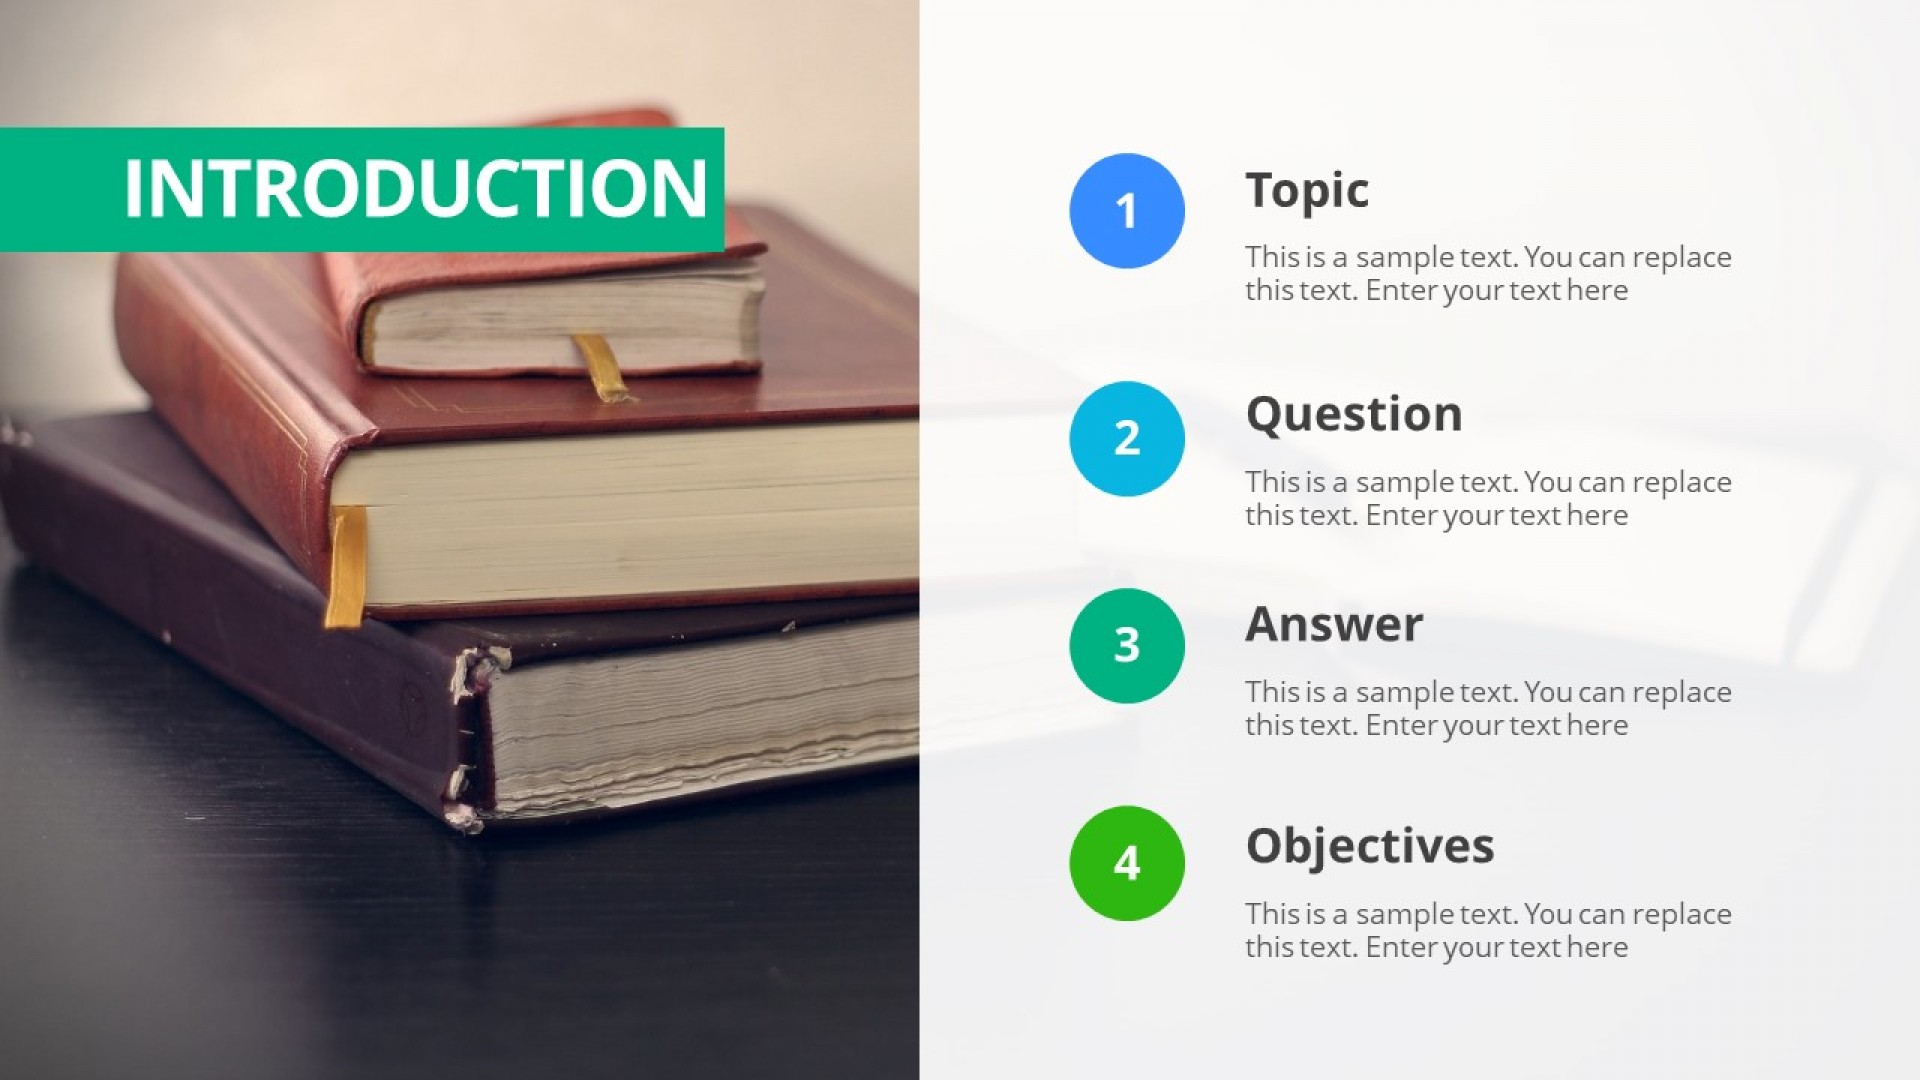 003 Research Paper Thesis Powerpoint Template 16x9 How To